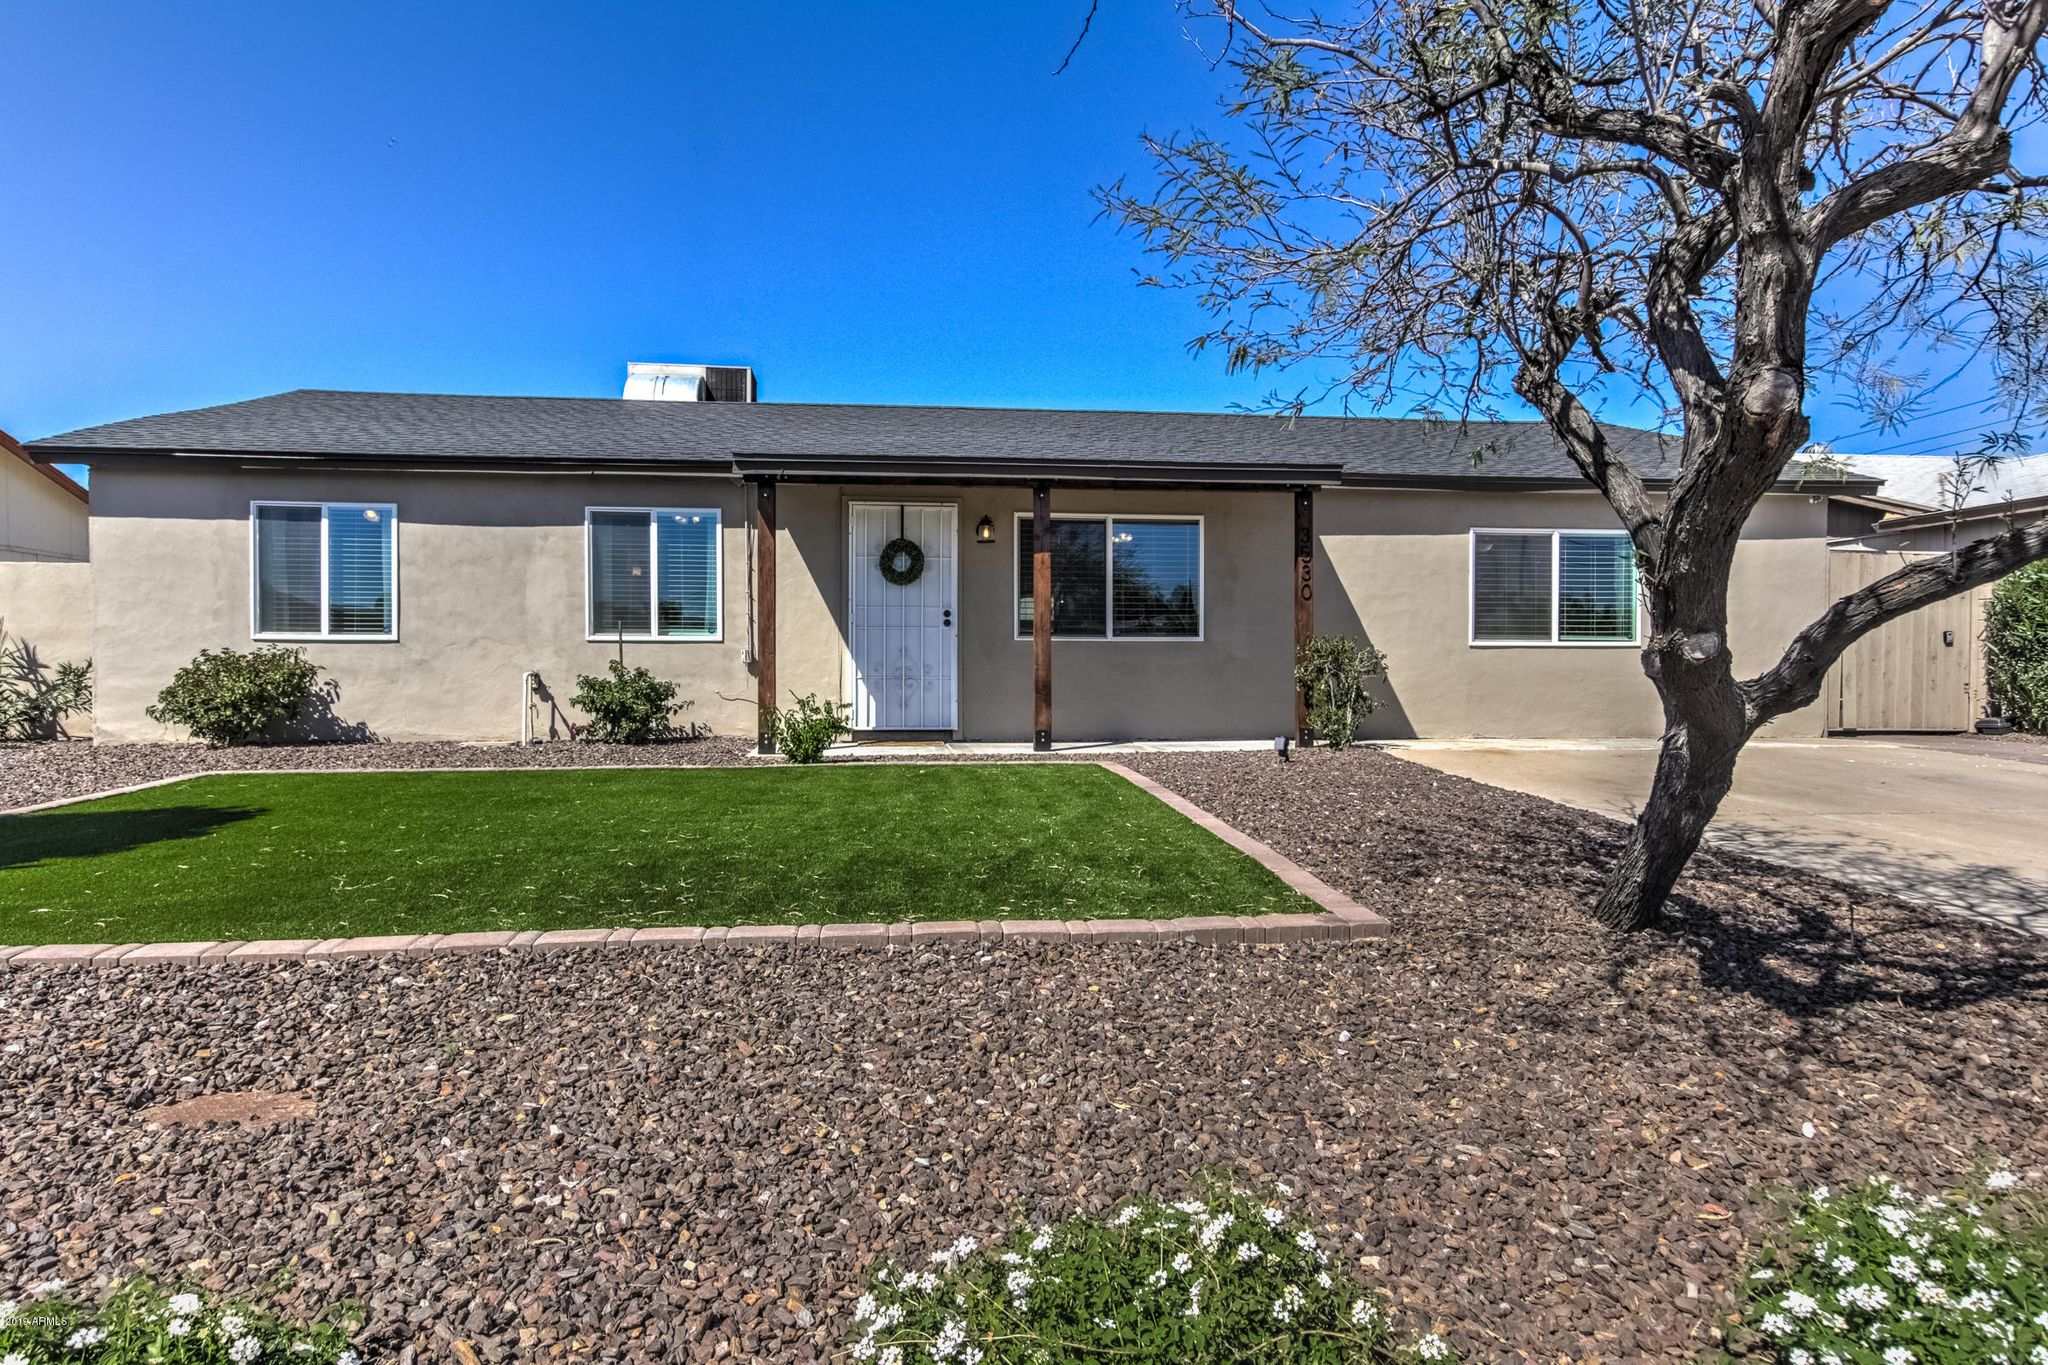 3530 E Nisbet Rd, Phoenix, AZ 85032 - 4 Bed, 2 Bath Single-Family Home -  MLS #5901821 - 66 Photos | Trulia